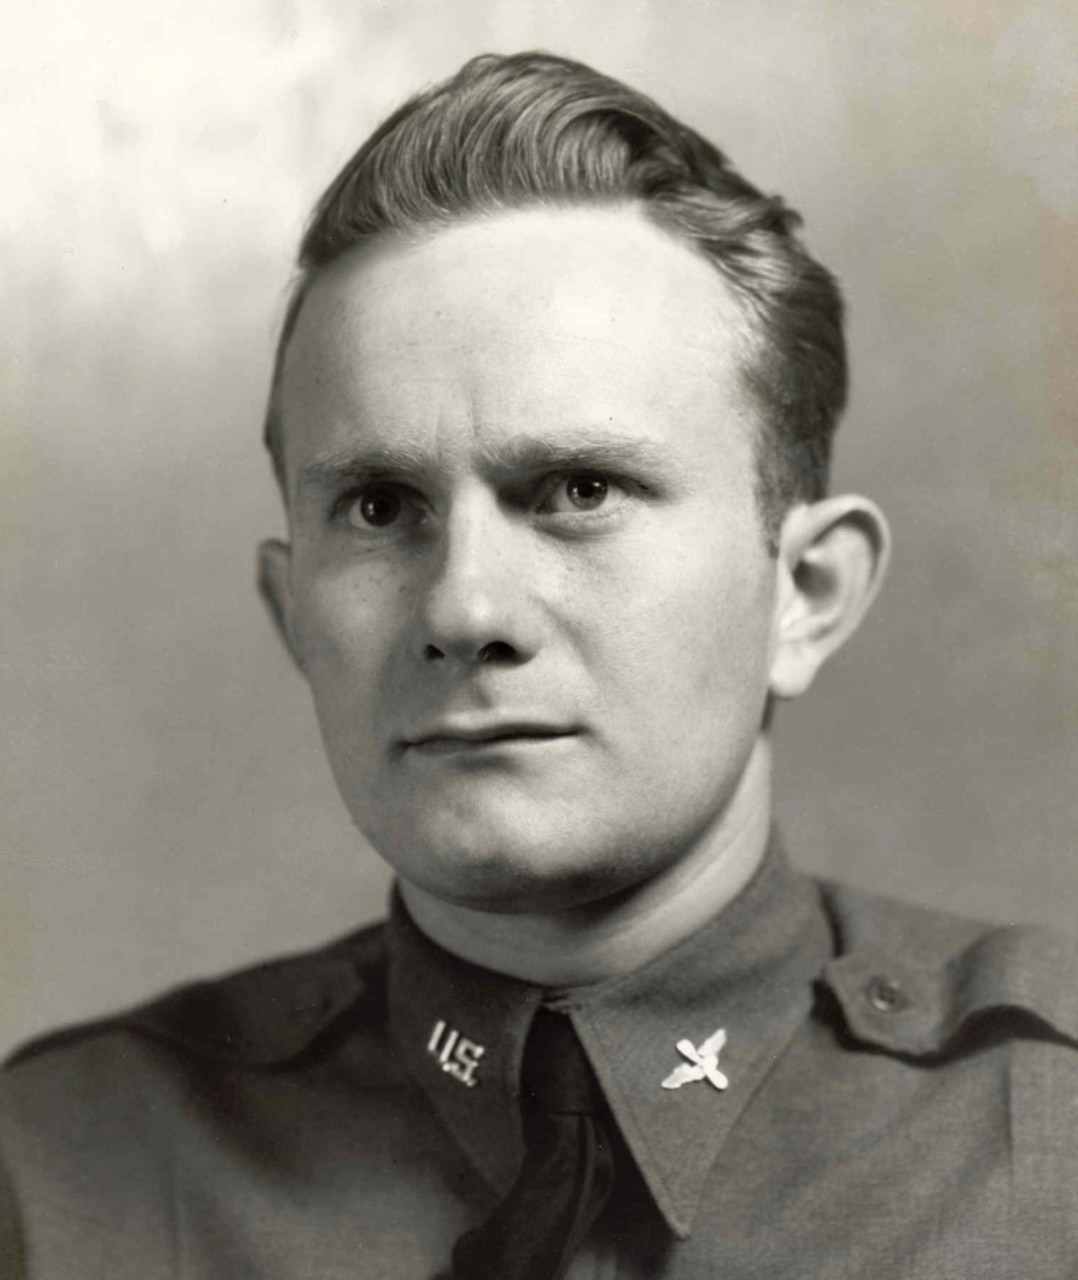 A man in a service jacket looks toward the camera.